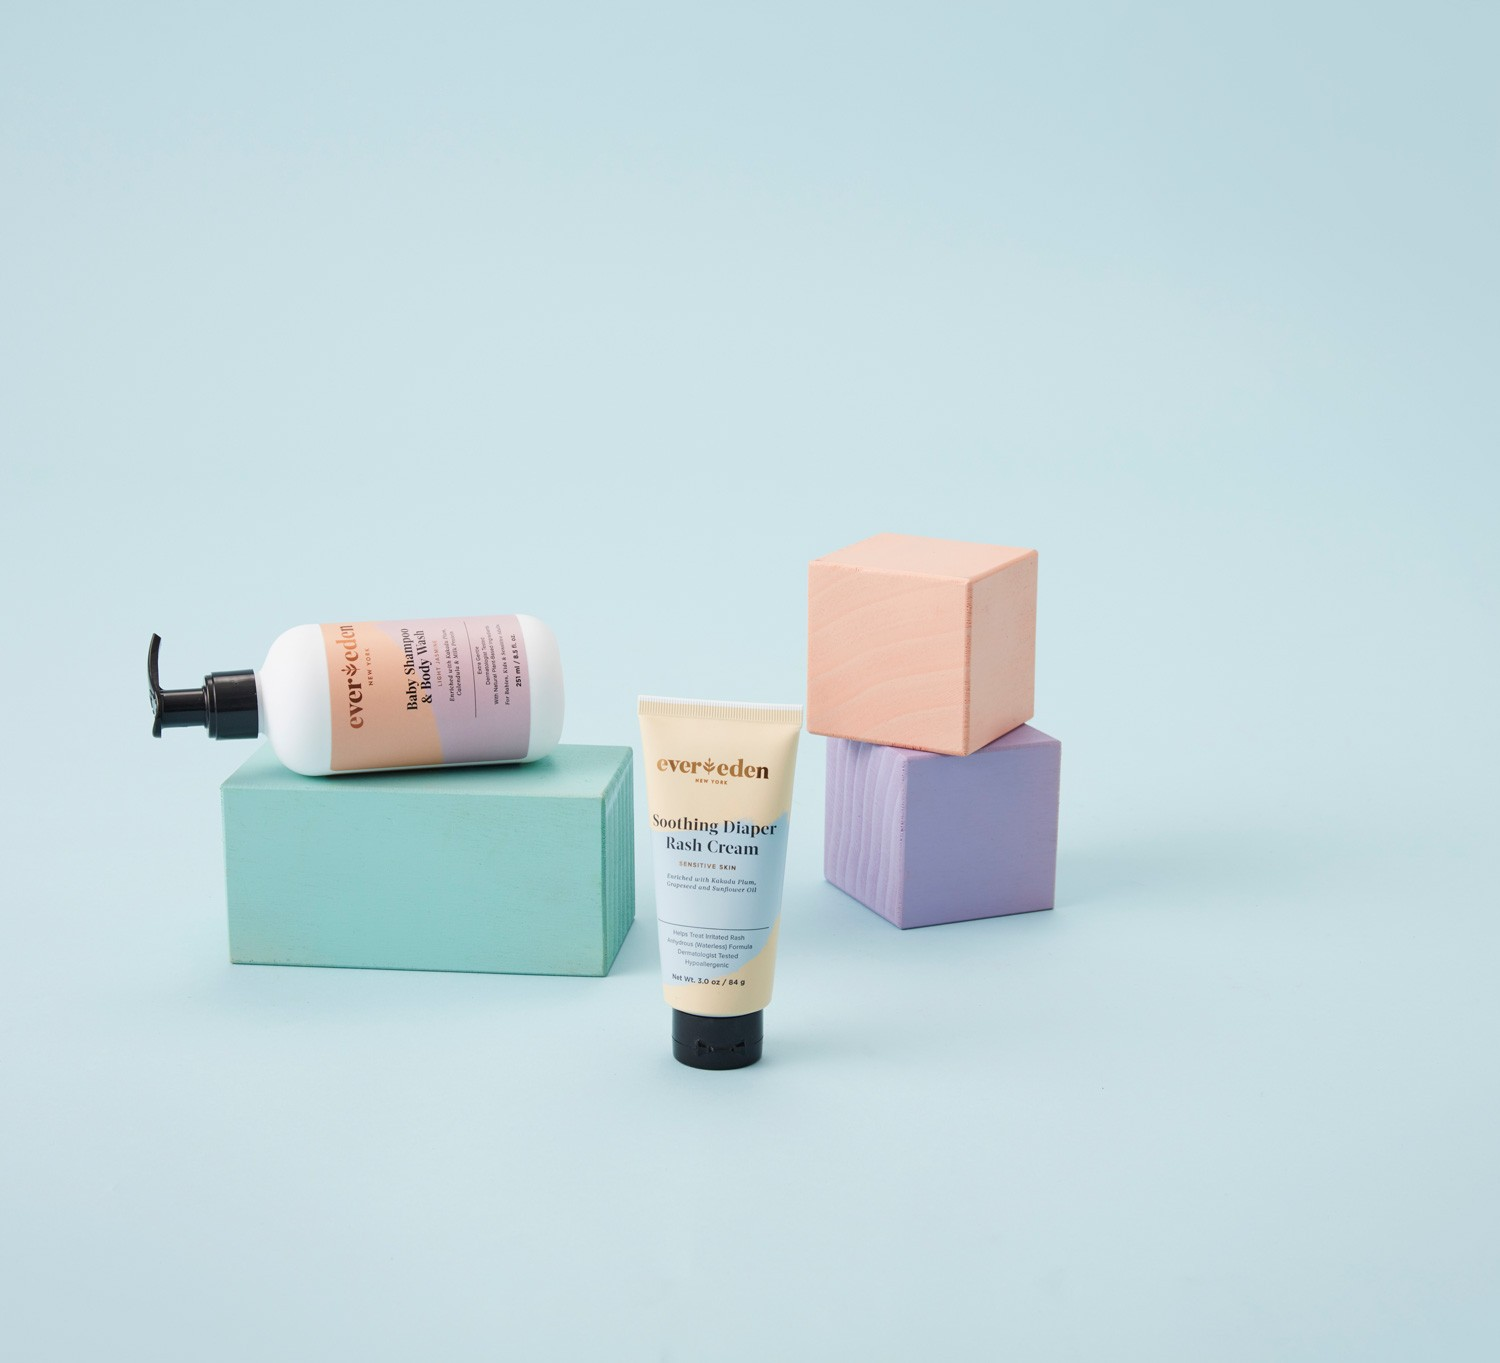 Conscientious Brand EverEden Seeks to Fill a Void in the World of Children's Skincare